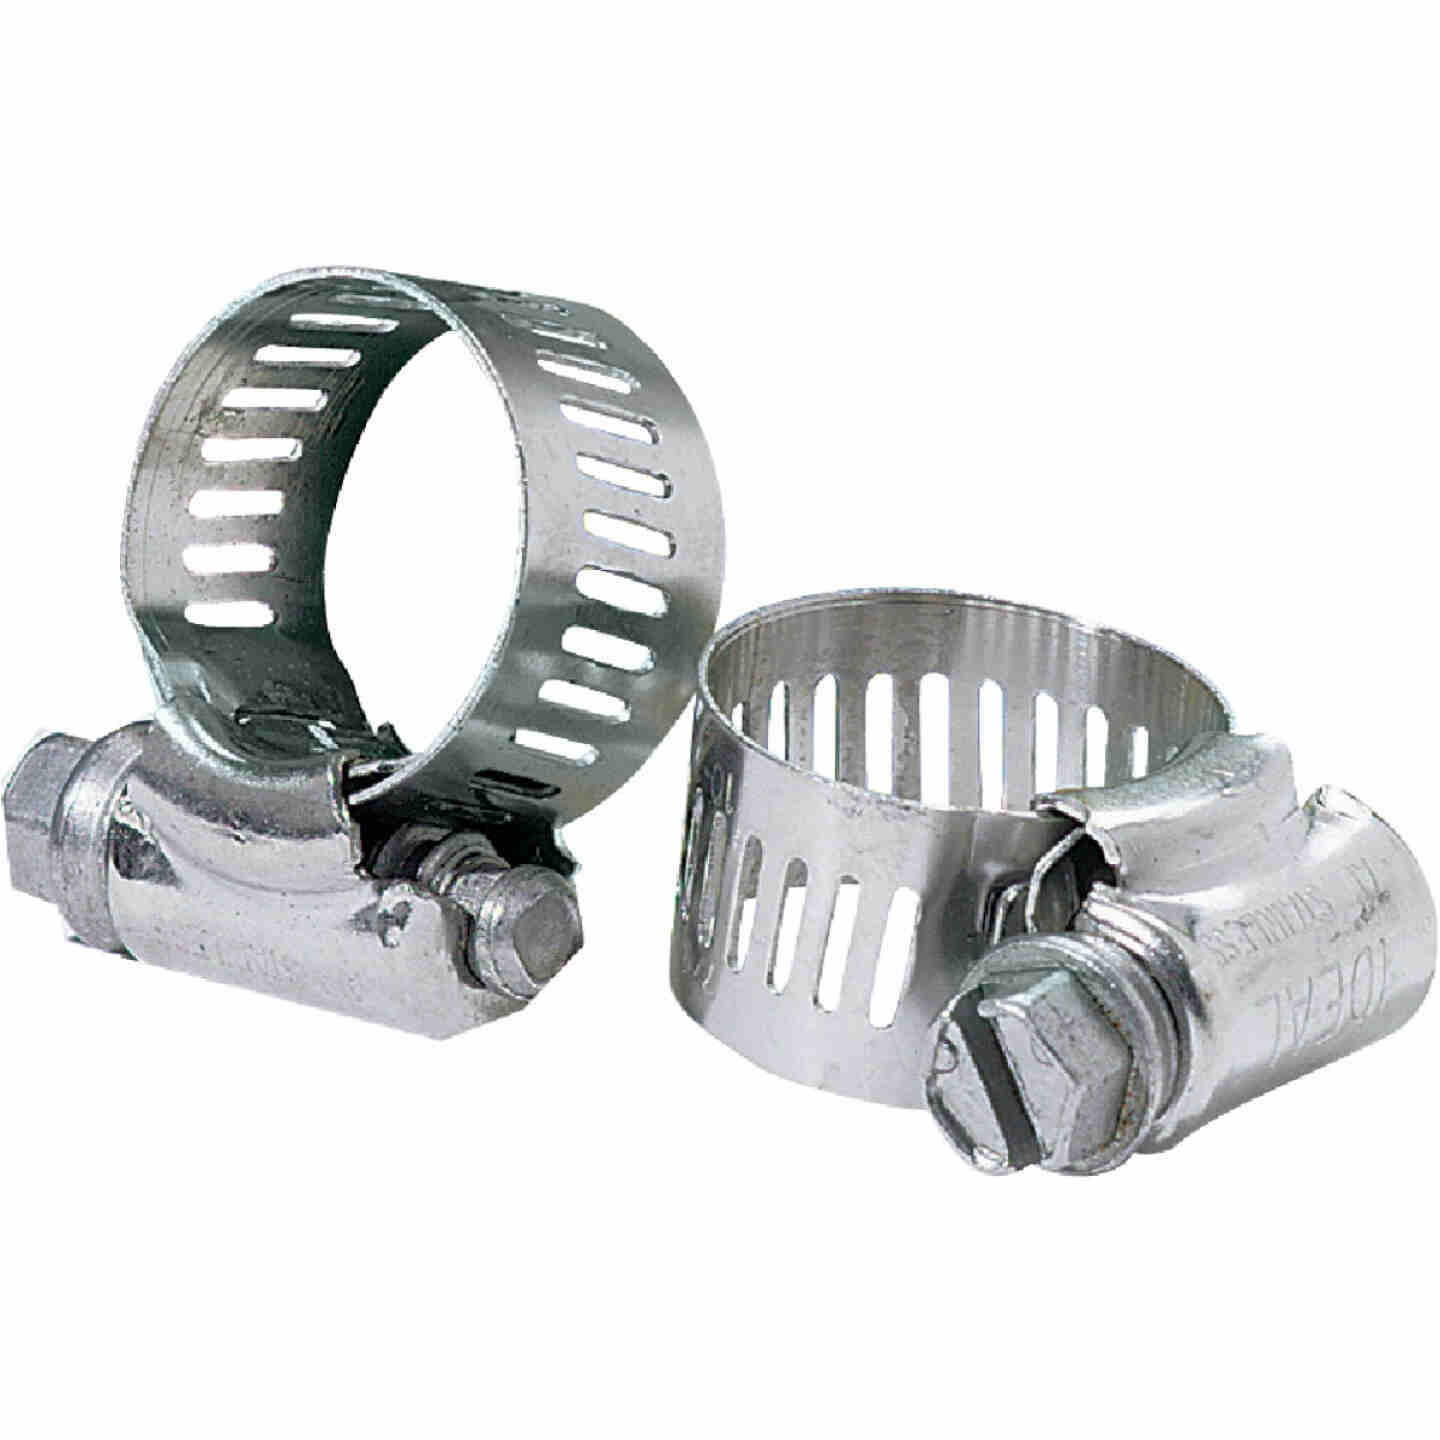 Ideal 1/2 In. - 1-1/16 In. 67 All Stainless Steel Hose Clamp Image 1